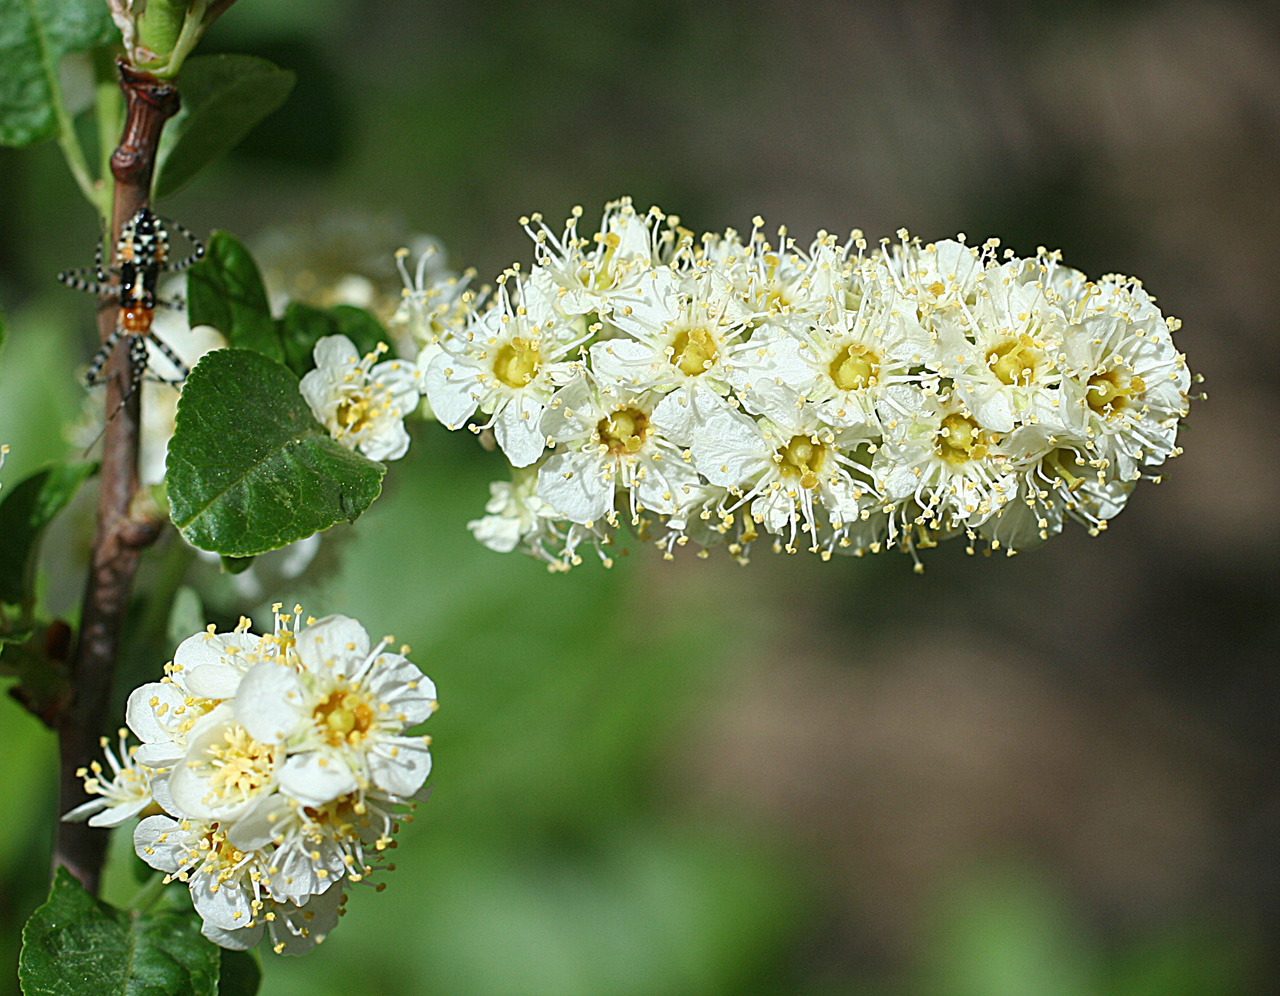 White flowers in a dense cluster